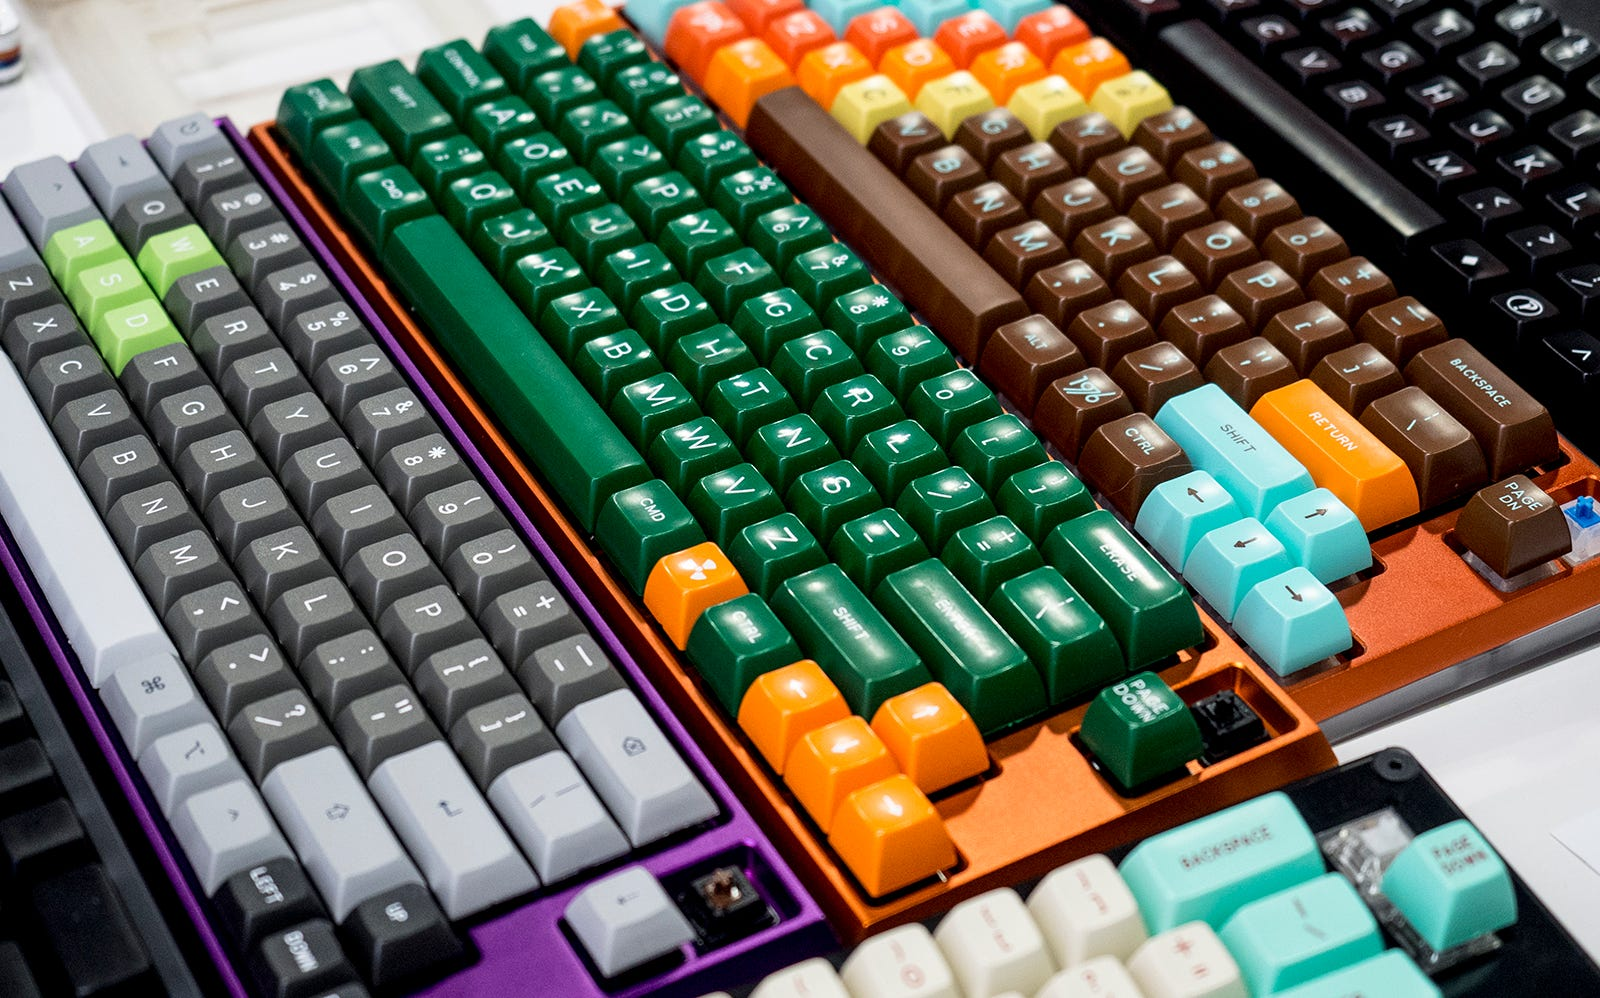 Key Crazy: Inside the Wonderful World of Keyboard Fanatics